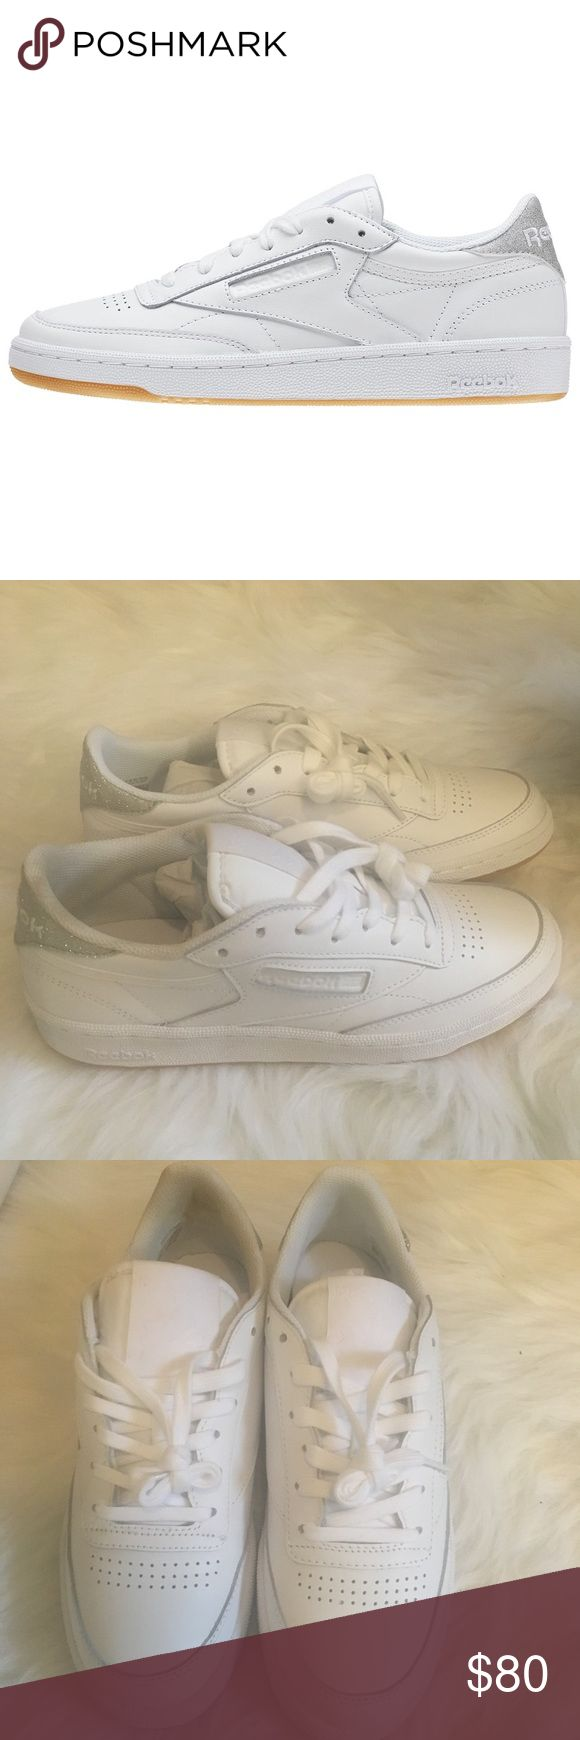 ▪️ White diamond gum reebok sneakers Brand new in box, Have never been worn BUT there is a cosmetic mark on the inside back of the right ankle. Would not be visible when worn. This is exactly why I can't purchase white anything 😩. Have not tried to get the cosmetic mark out because I didn't want to make it worse and wasn't planning on keeping-in fear of them getting dirty. Size 7.5. Can take extra pics if needed. Saw on a Kardashian and fell in love 🖤 will have to try another color. Price…